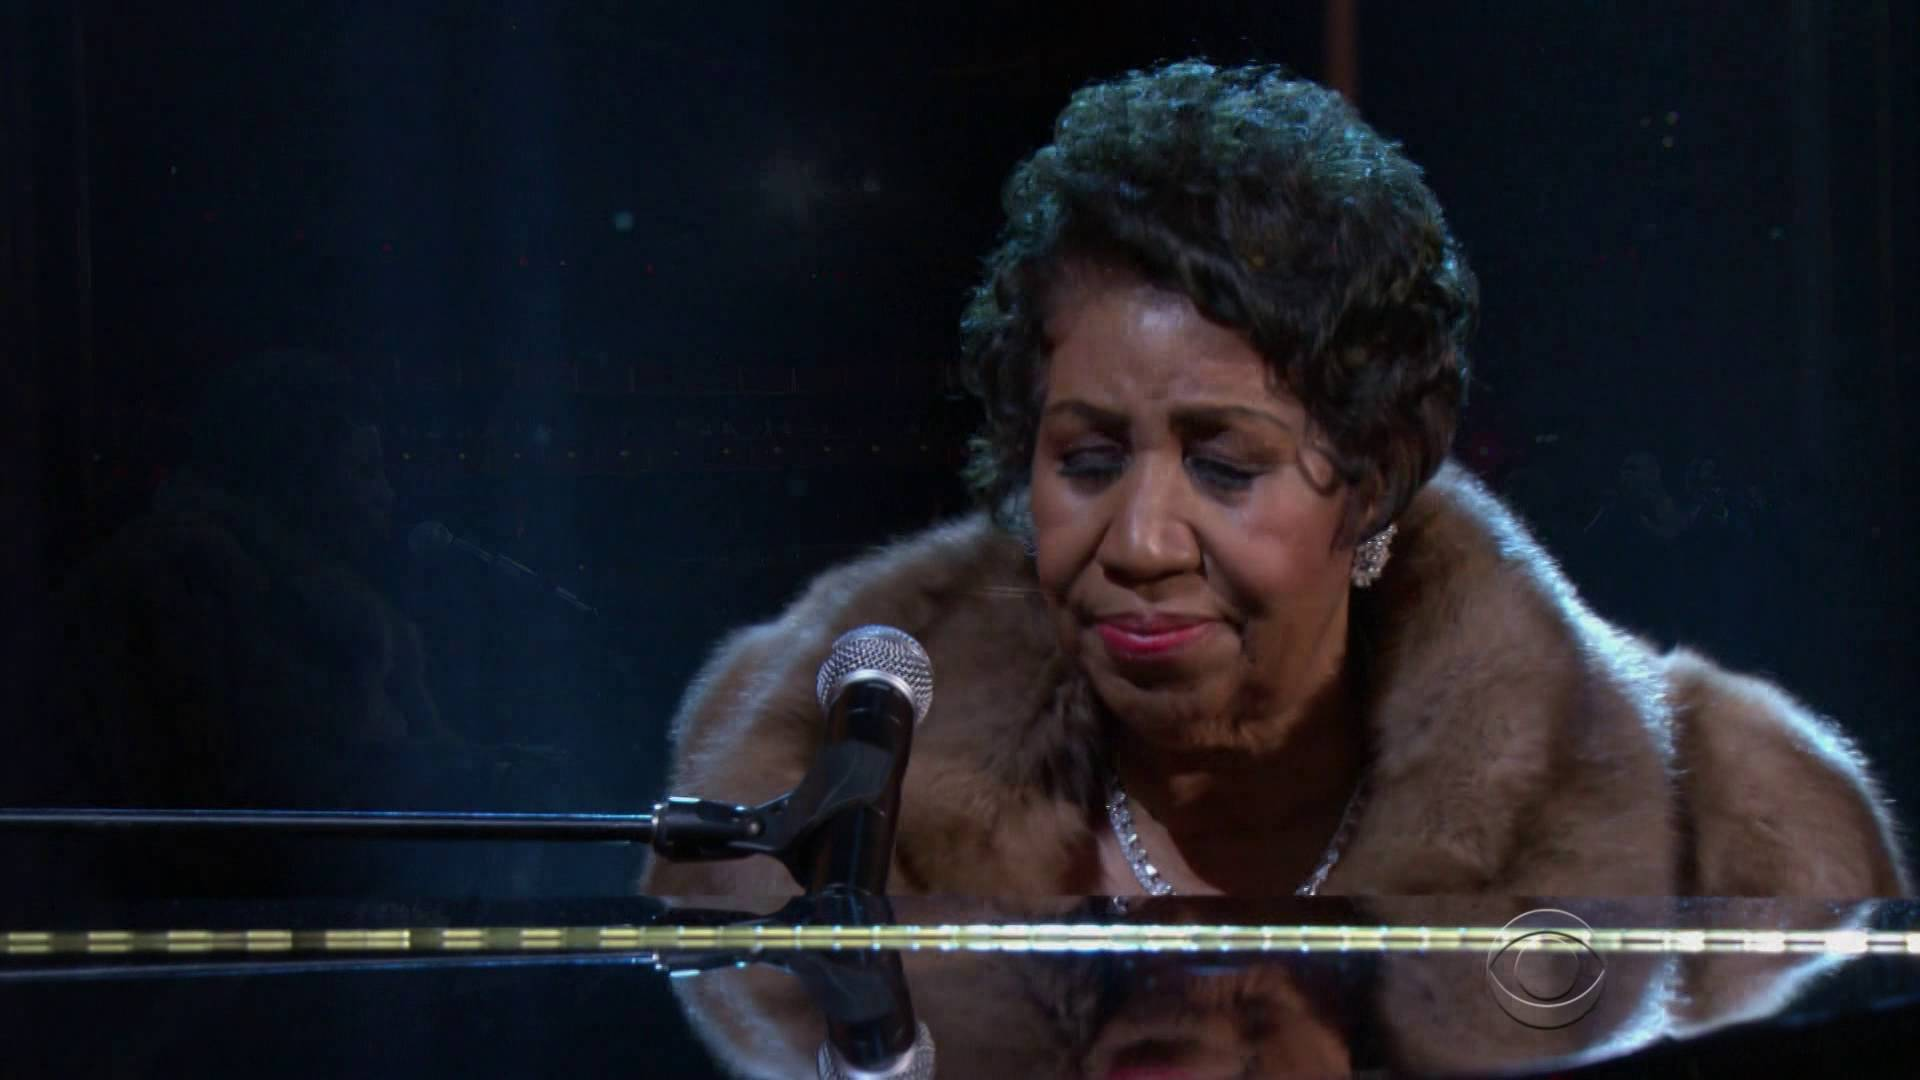 Watch The Queen of Soul bring a tear to Obama's eye